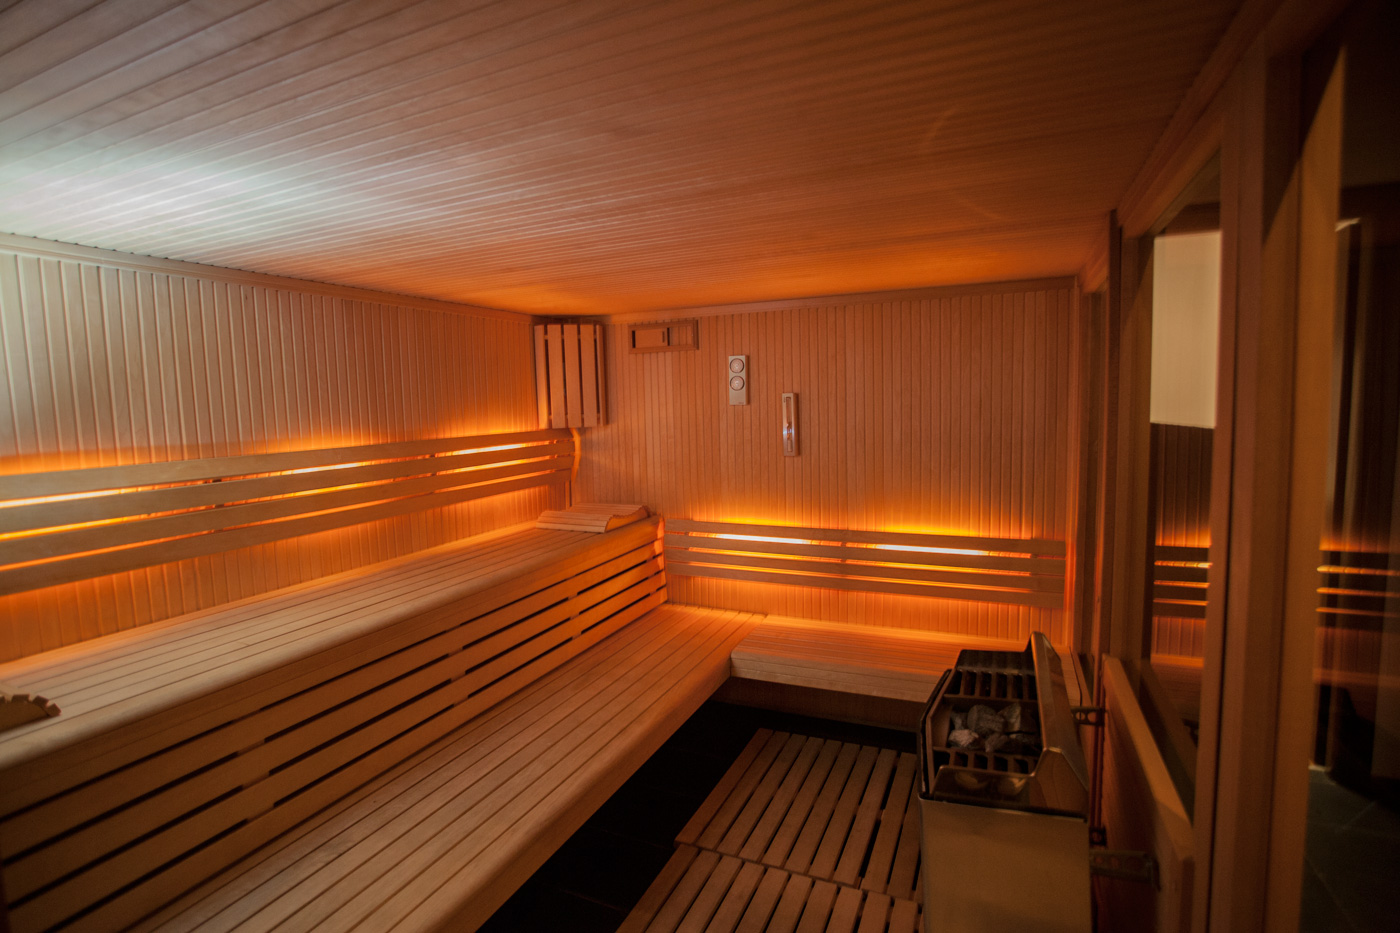 Infrared Sauna - The Recovery Room's Infrared Sauna can greatly benefit your sore, damaged or tired muscles. The heat penetrates the muscles, increasing blood circulation and assisting healing. Infrared heat will also help tight and worn-out muscles to relax.